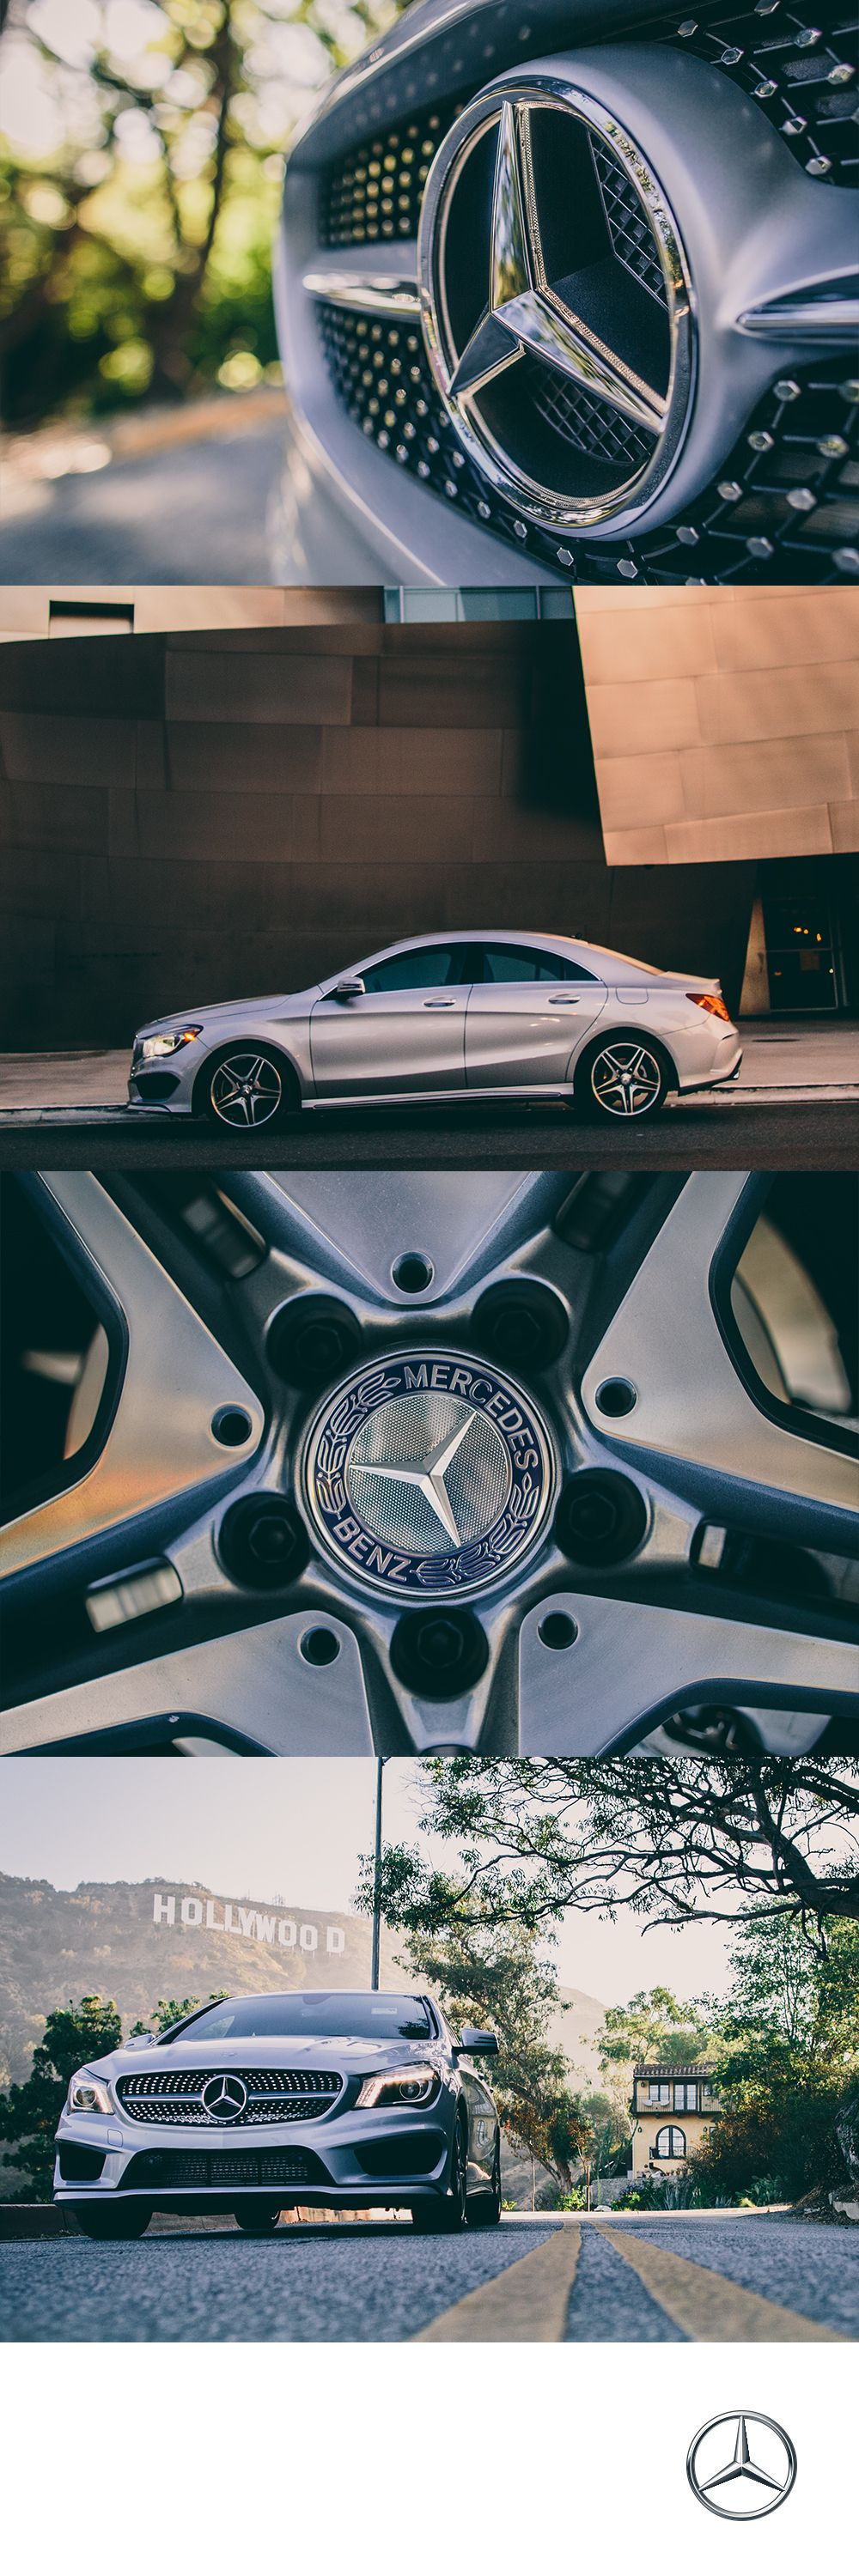 The CLA250 doesn't compromise when it comes to power with a sport-tuned suspension